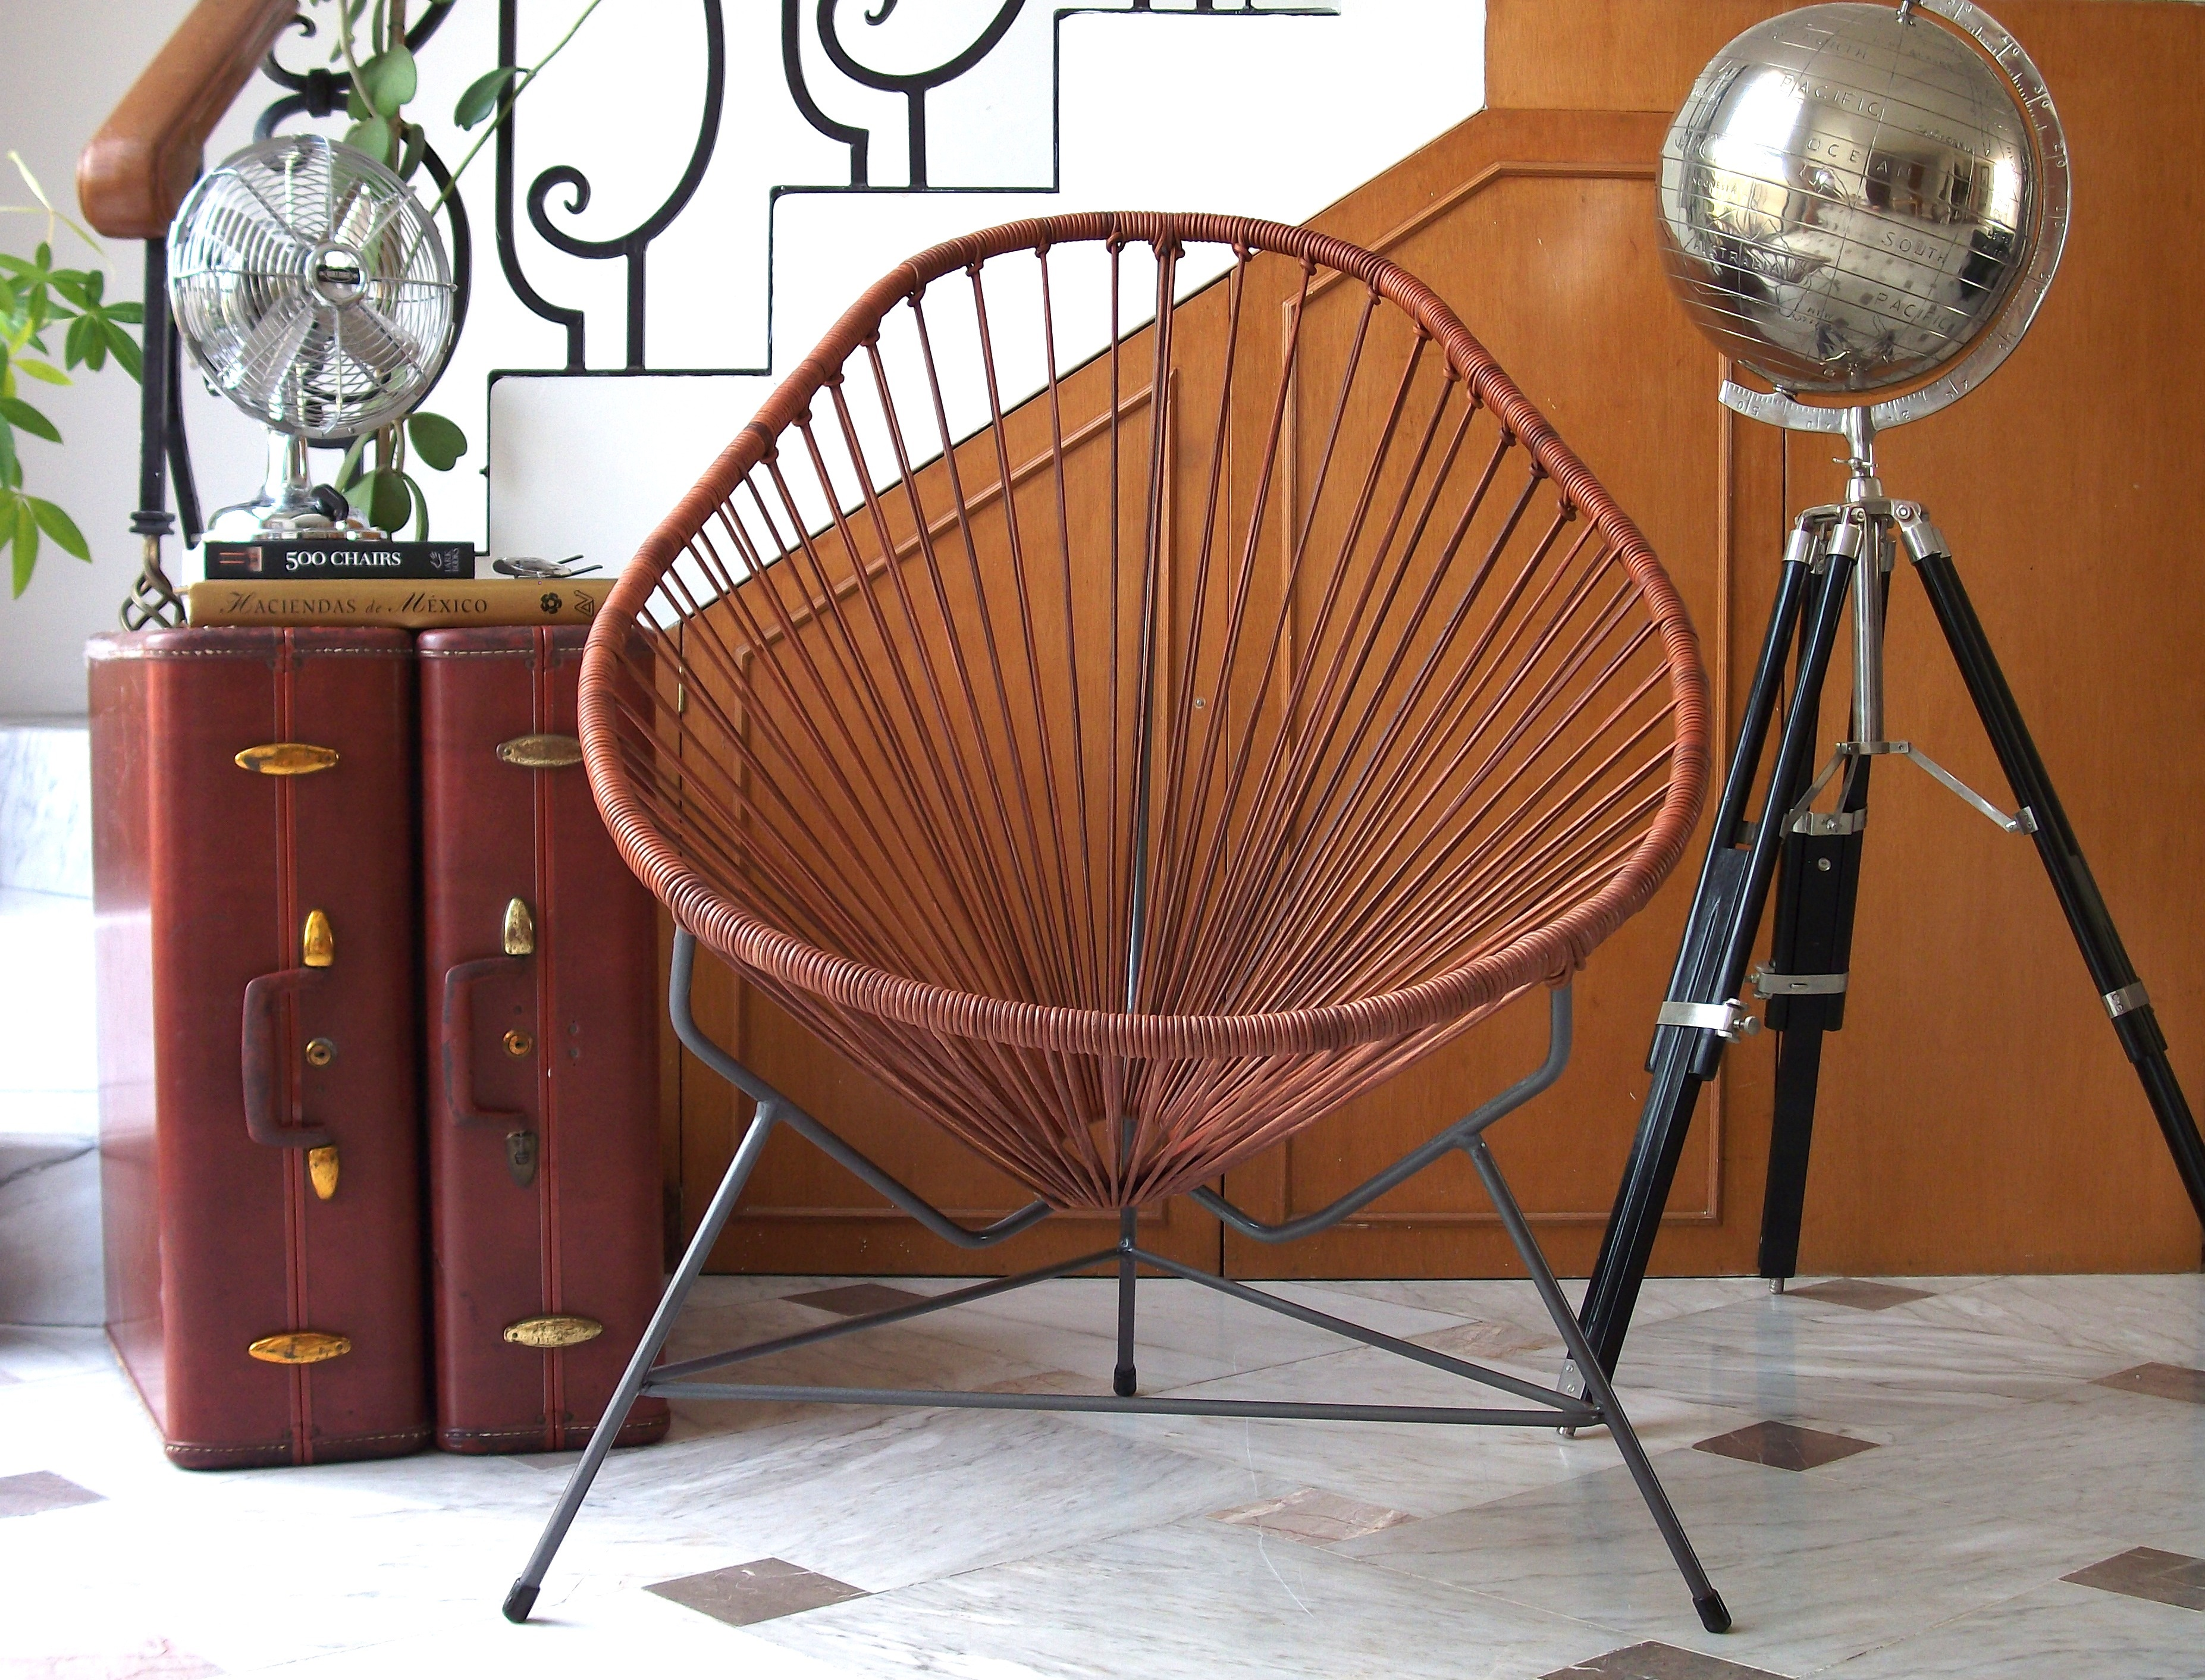 Acapulco Chairs The Debate Between Original And Replica Acapulco Chairs